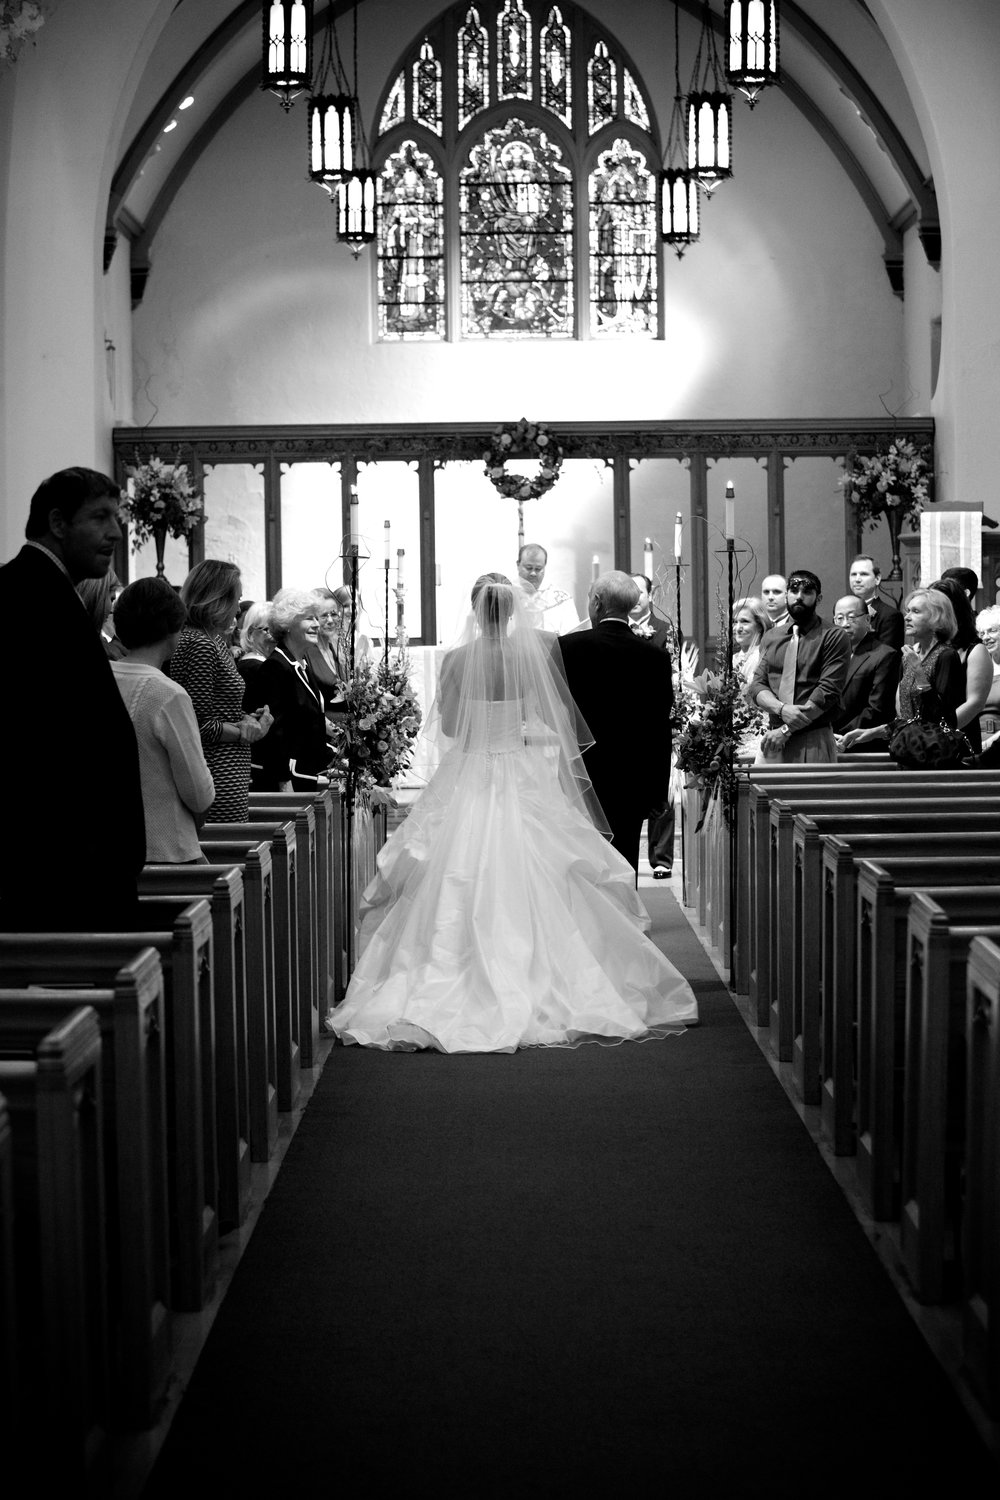 The father of the bride escorts her down the aisle.